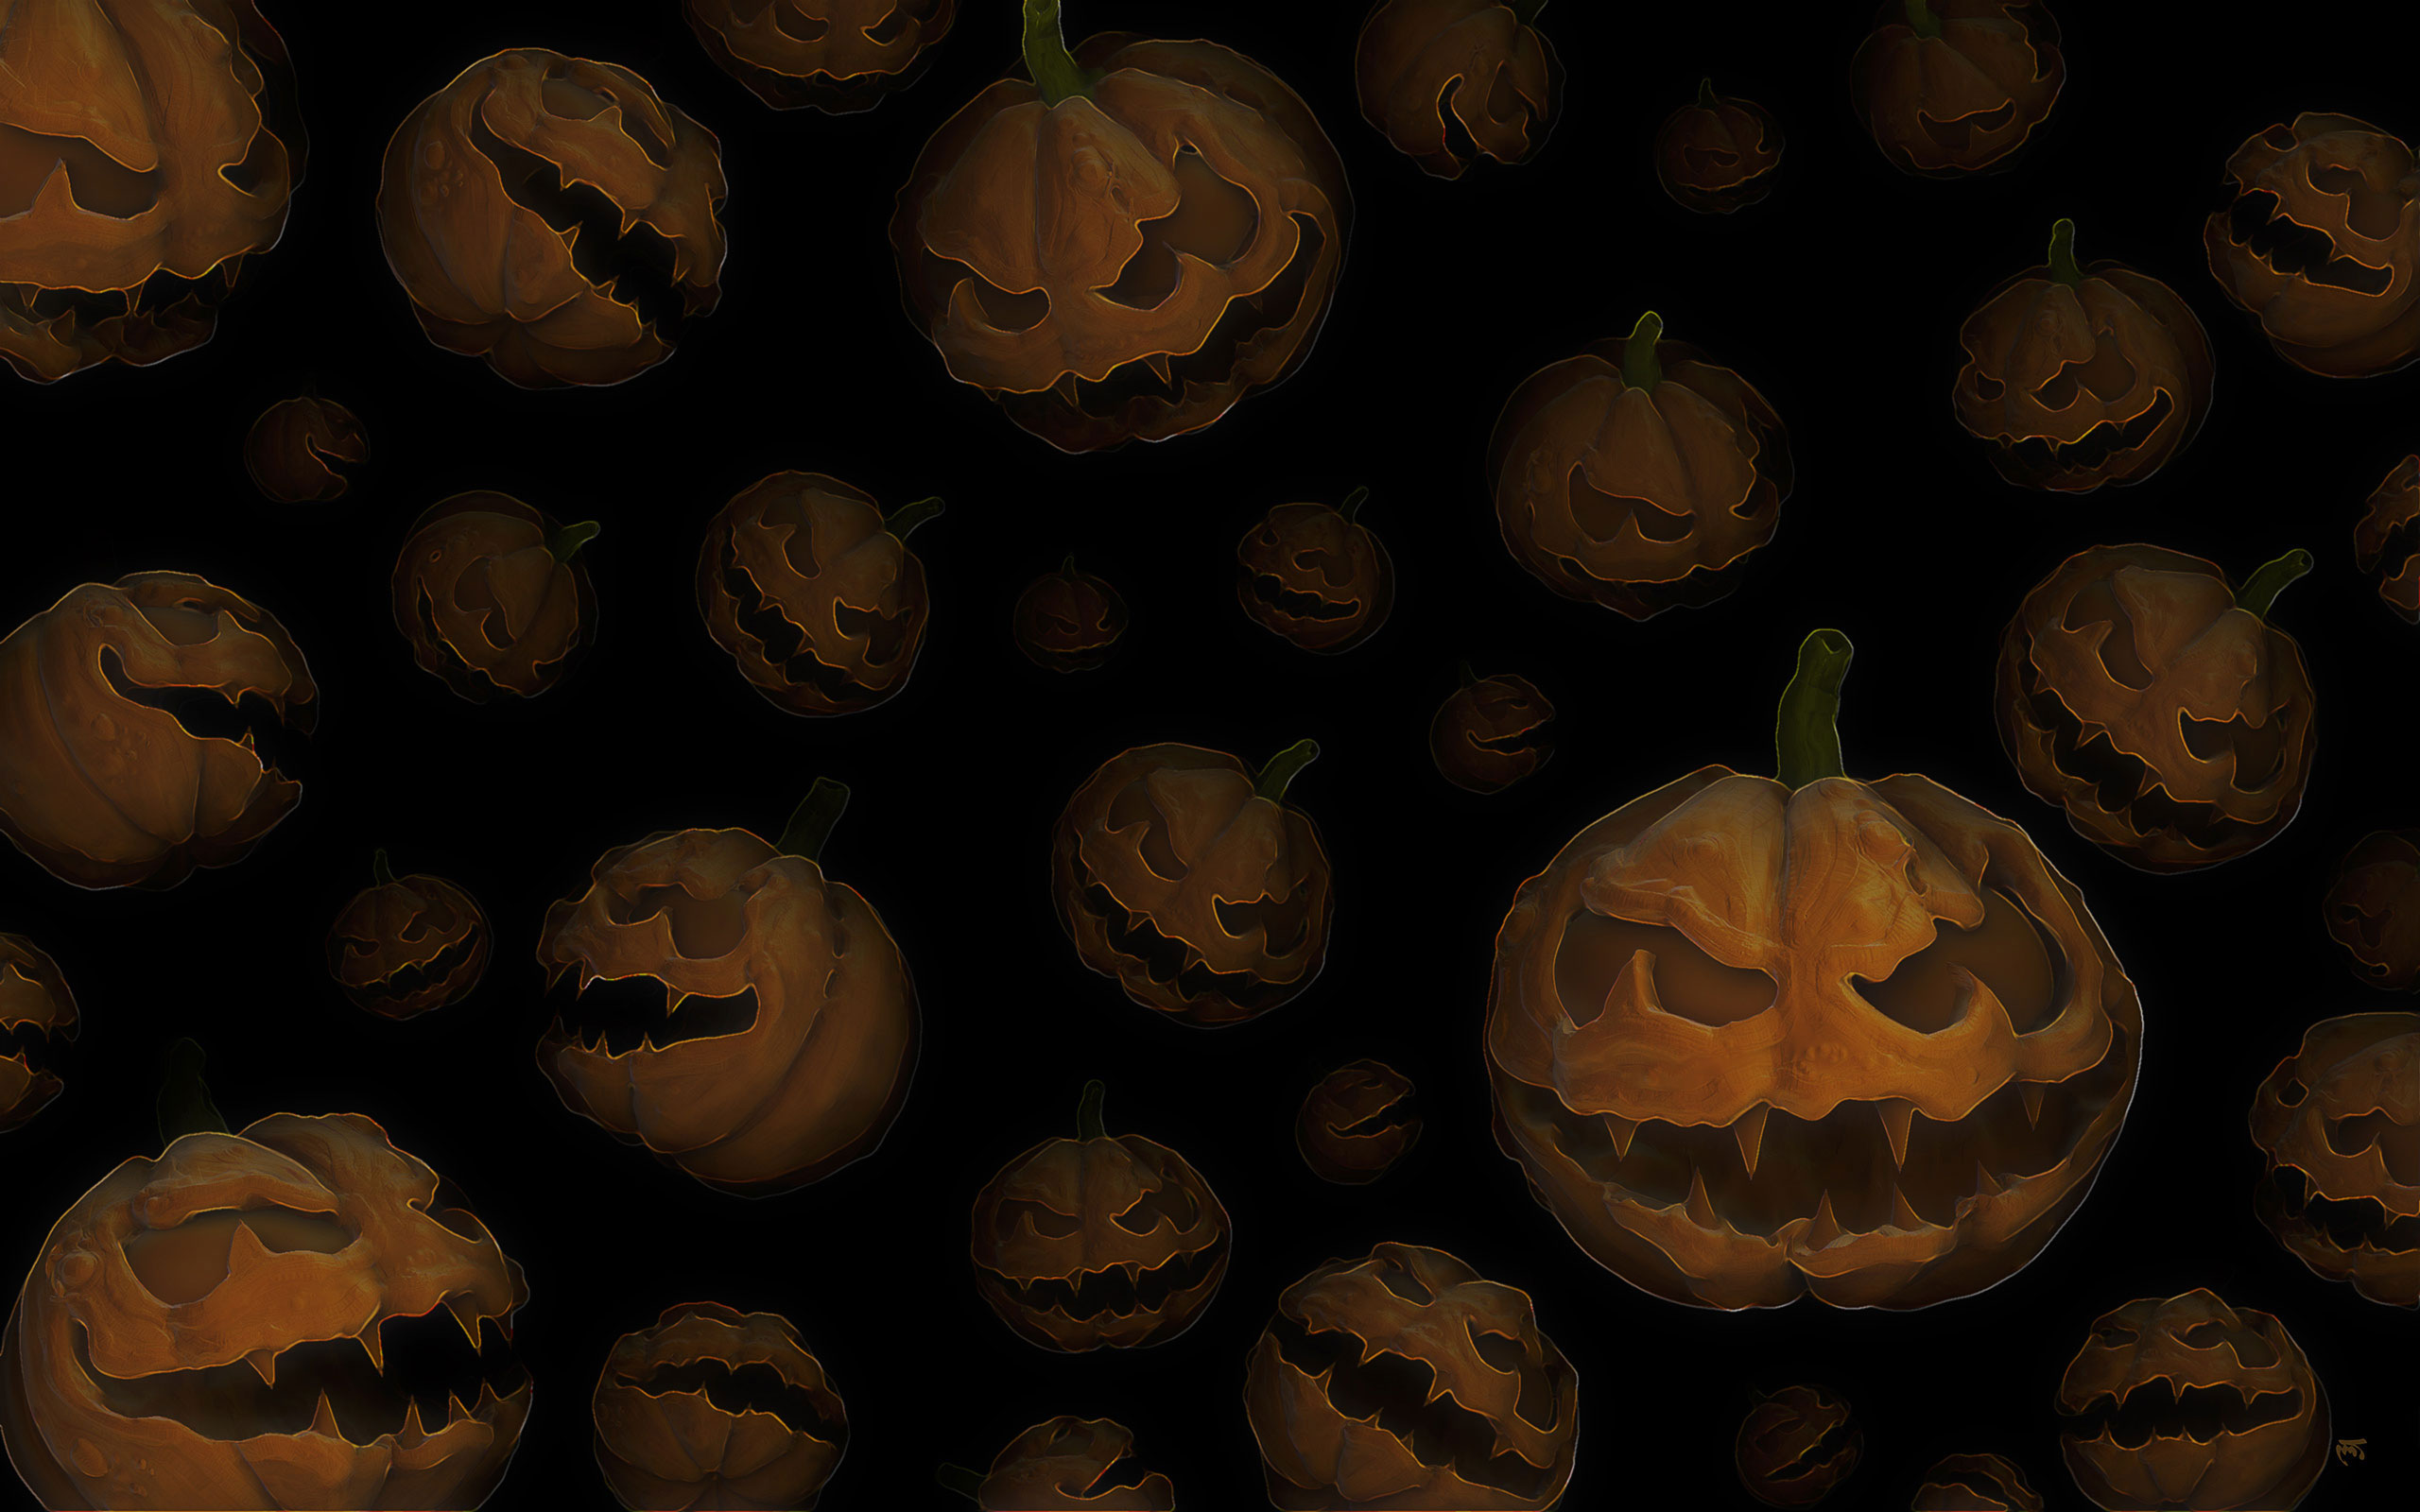 Iphone wallpaper halloween tumblr - Halloween Website_background_pumpkins_2560x1600